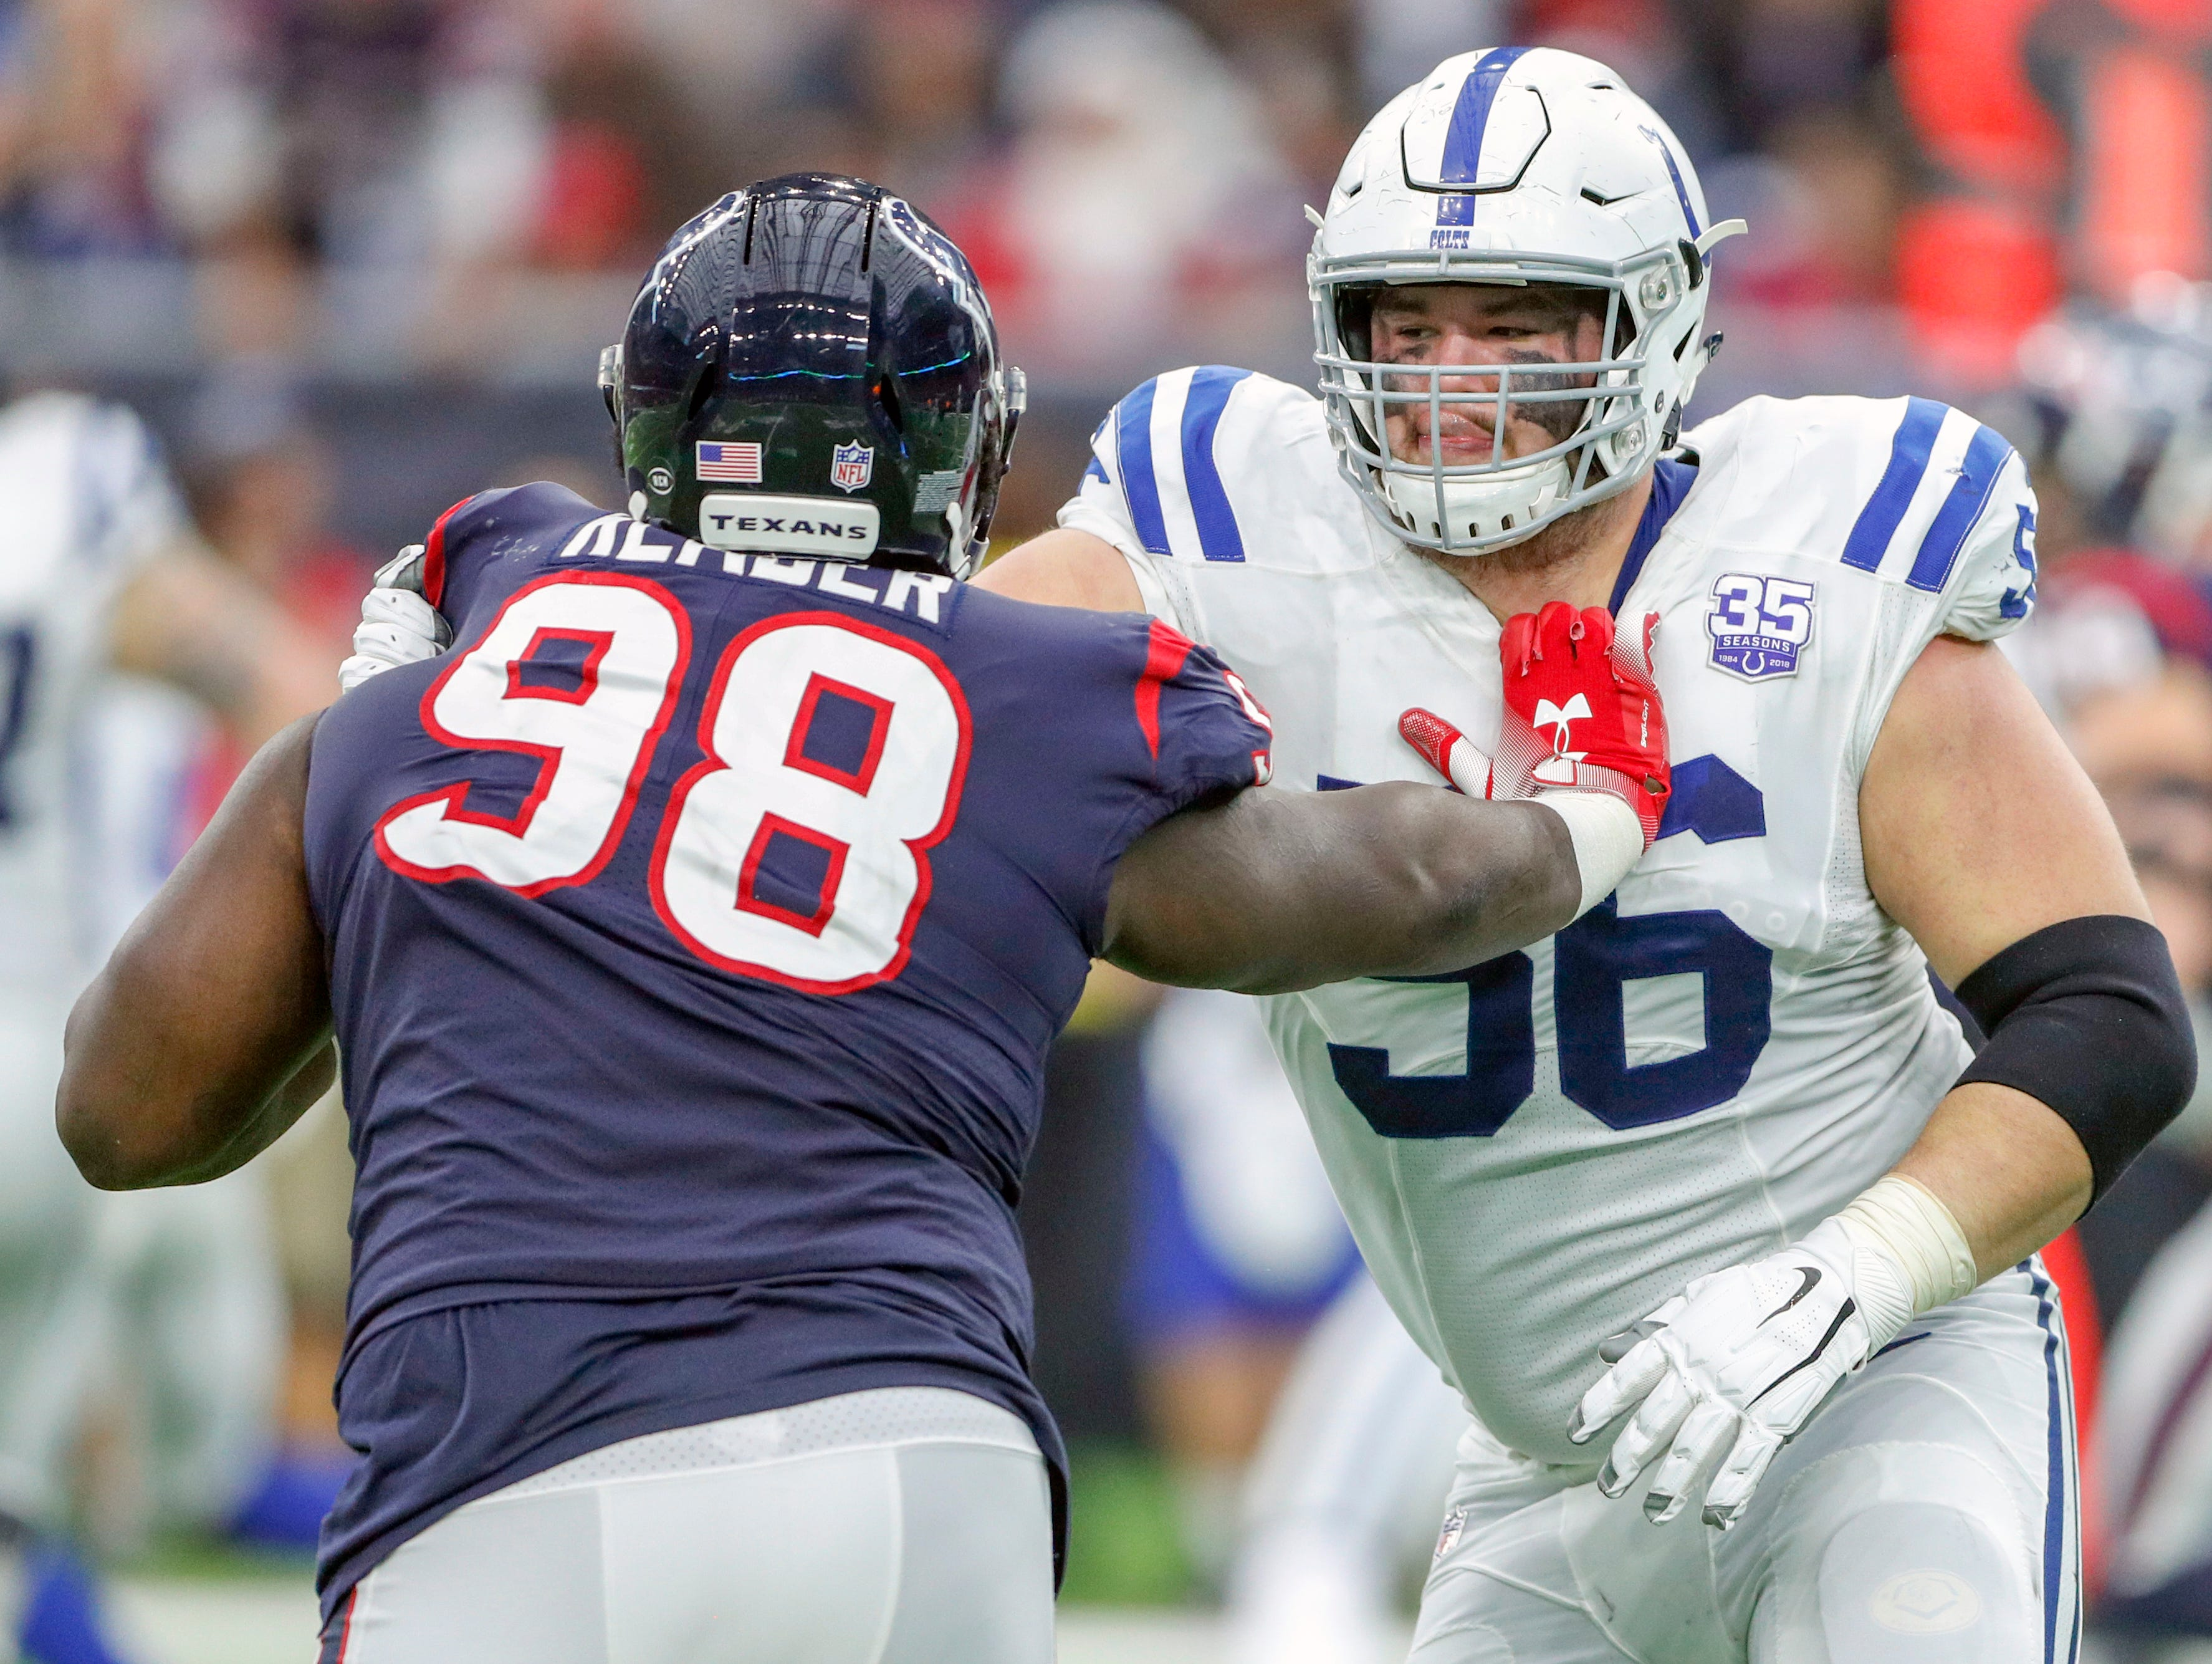 Indianapolis Colts offensive guard Quenton Nelson (56) blocks Houston Texans defensive end D.J. Reader (98) in the third quarter at NRG Stadium in Houston on Sunday, Dec. 9, 2018.